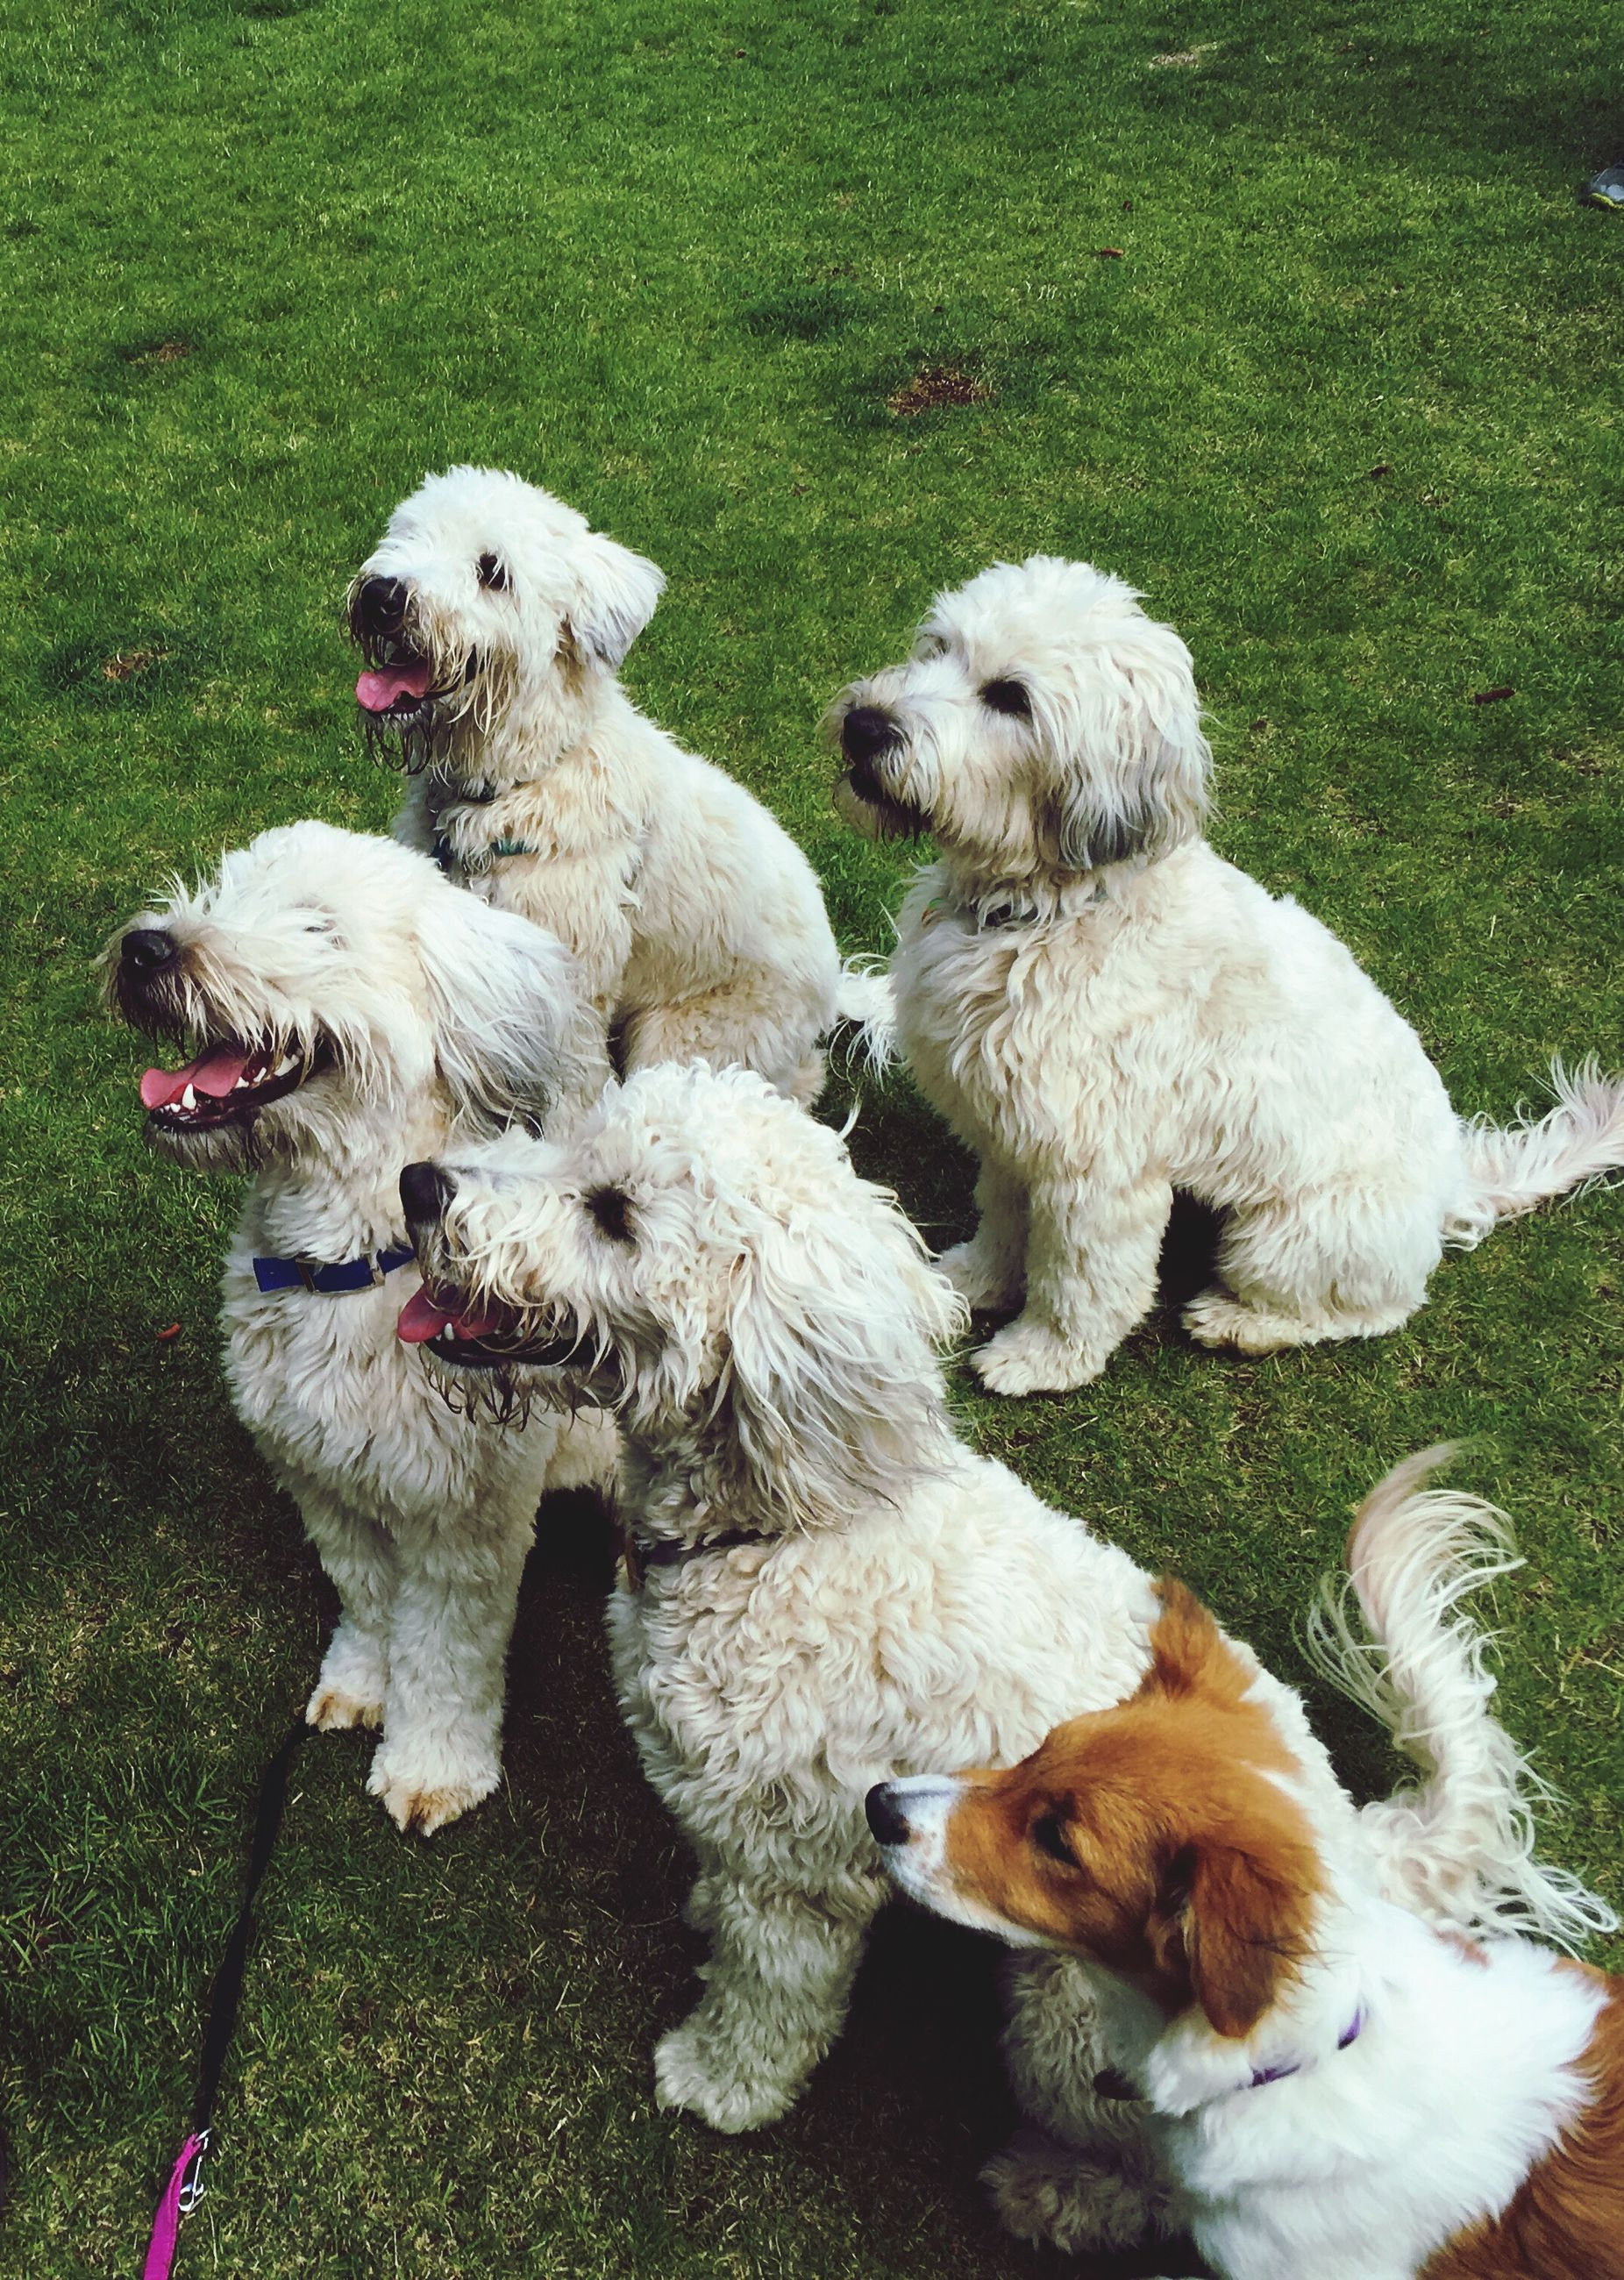 domestic animals, mammal, white color, grass, sheep, pets, field, livestock, relaxation, day, young animal, nature, no people, white, lying down, outdoors, grassy, animal family, resting, cute, green color, puppy